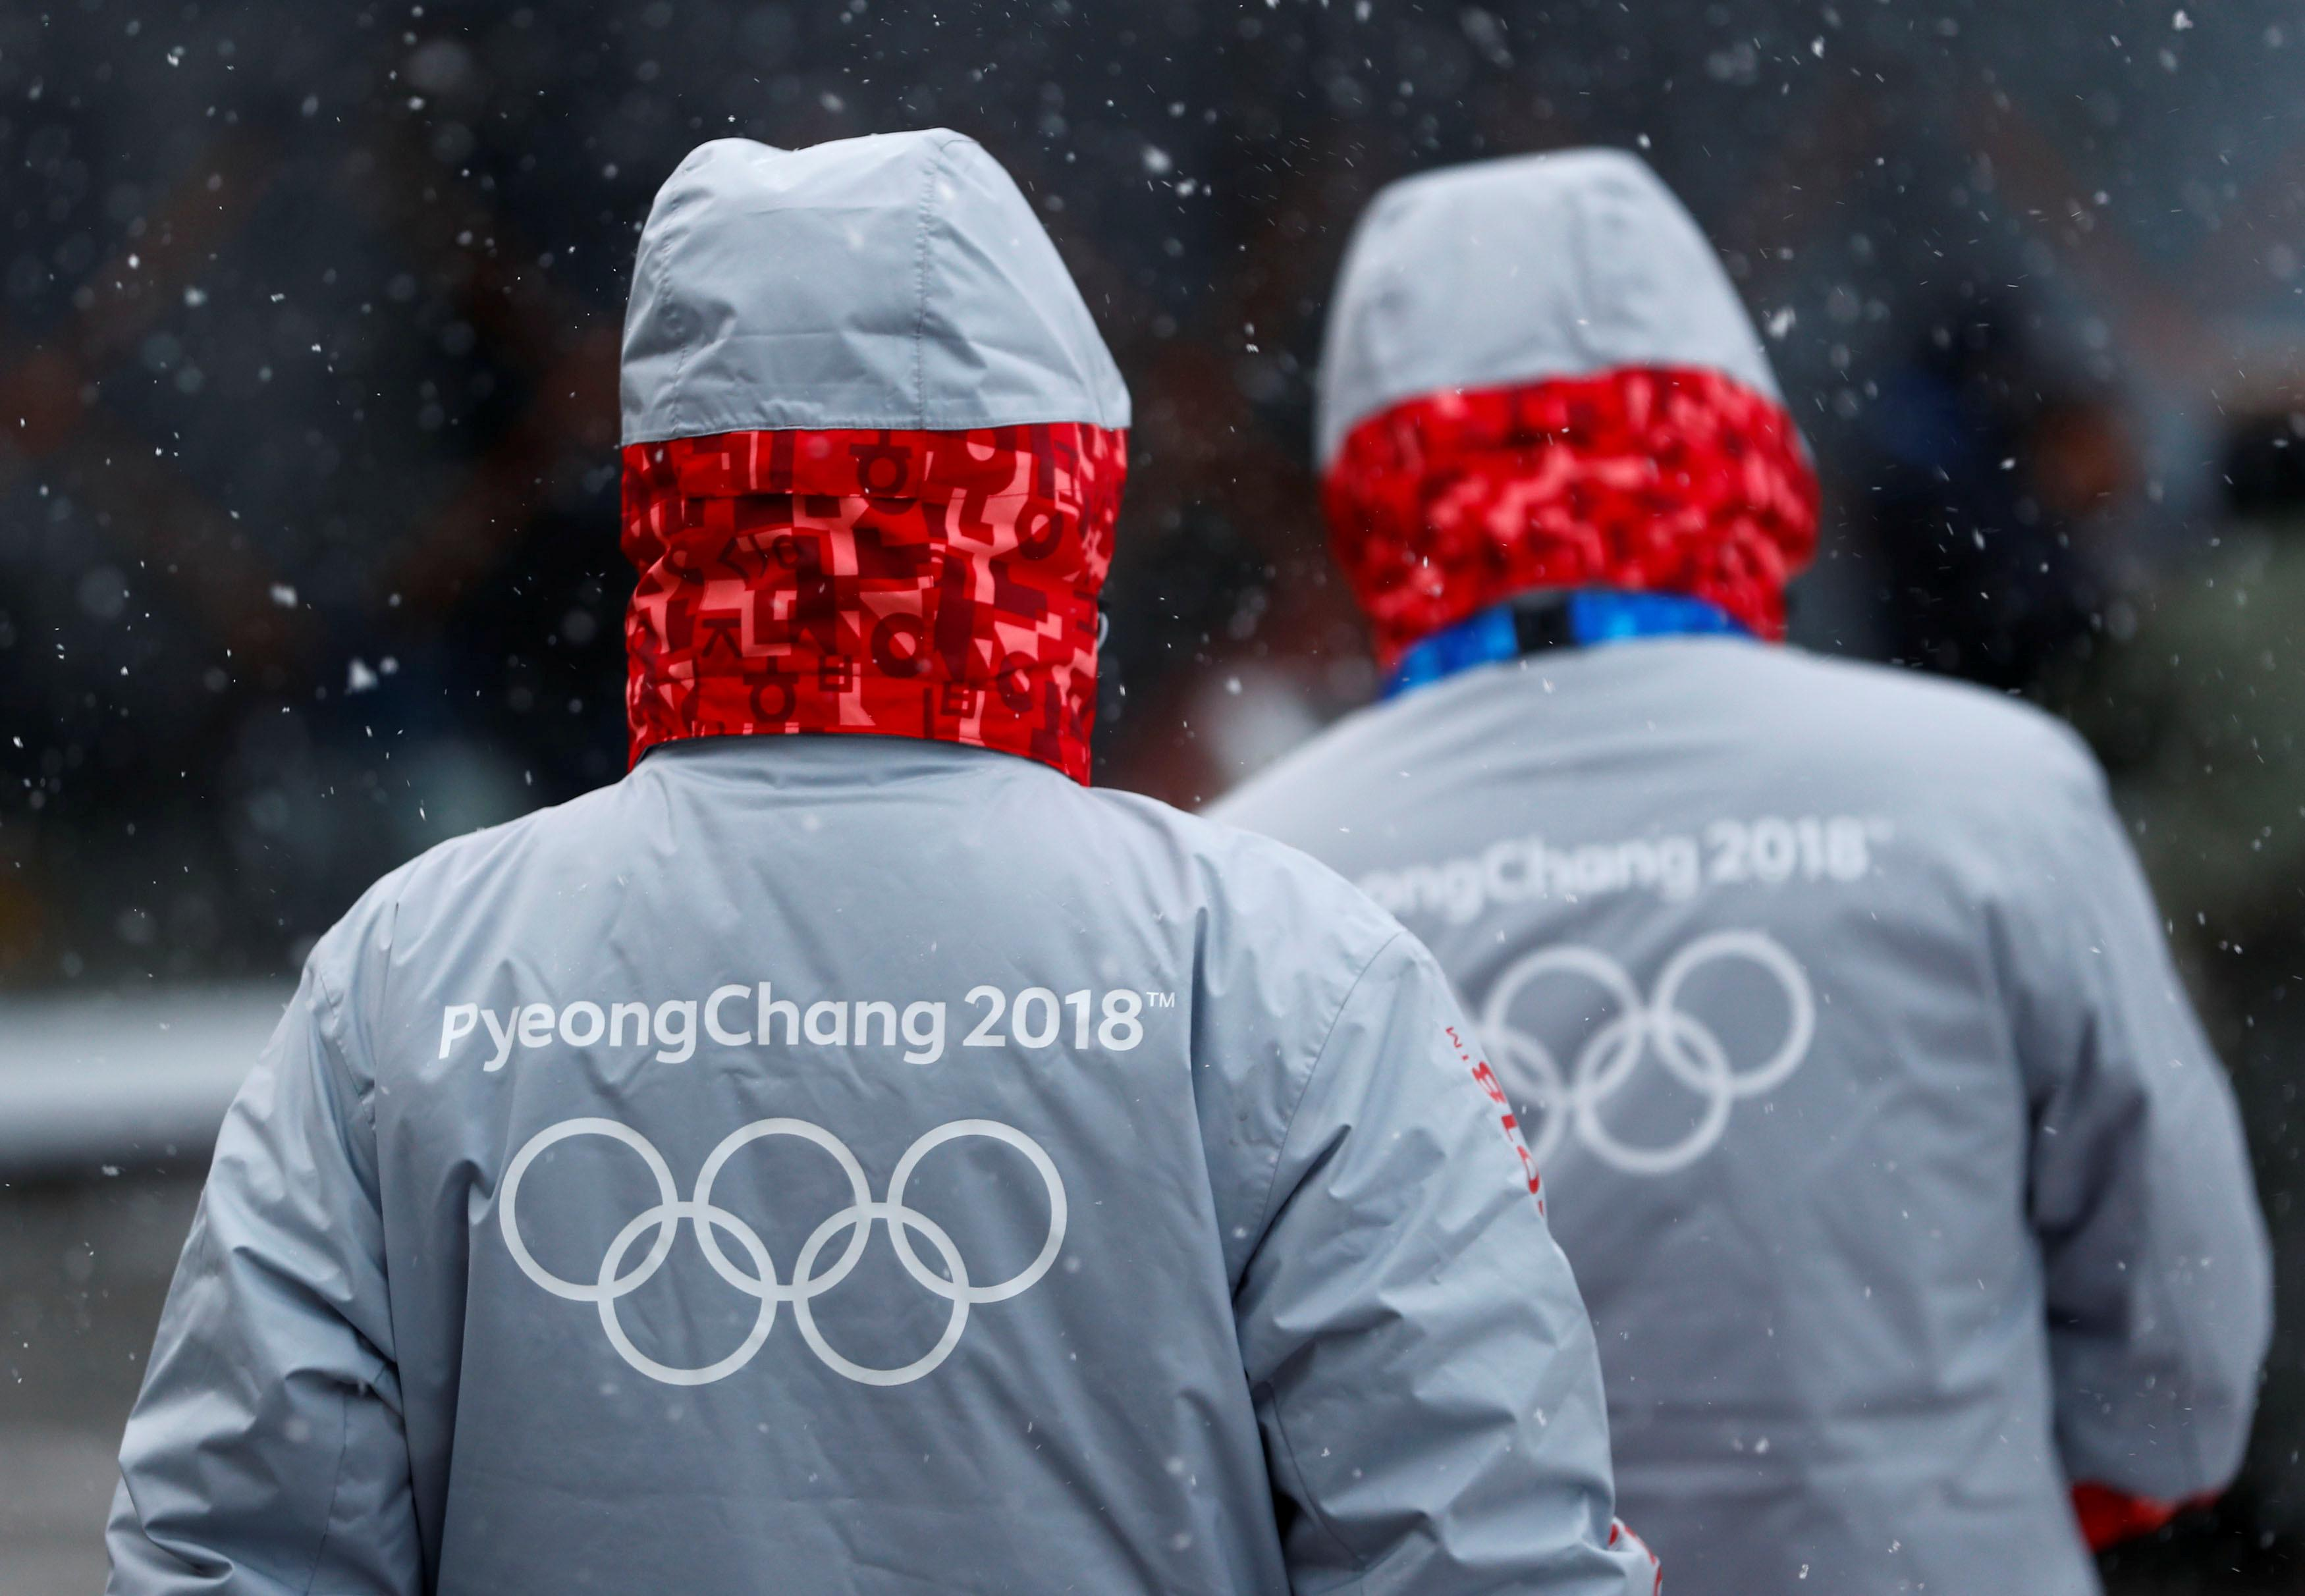 Volunteers for the upcoming 2018 Pyeongchang Winter Olympic Games walk in Pyeongchang, South Korea, January 22, 2018.   Fabrizio Bensch